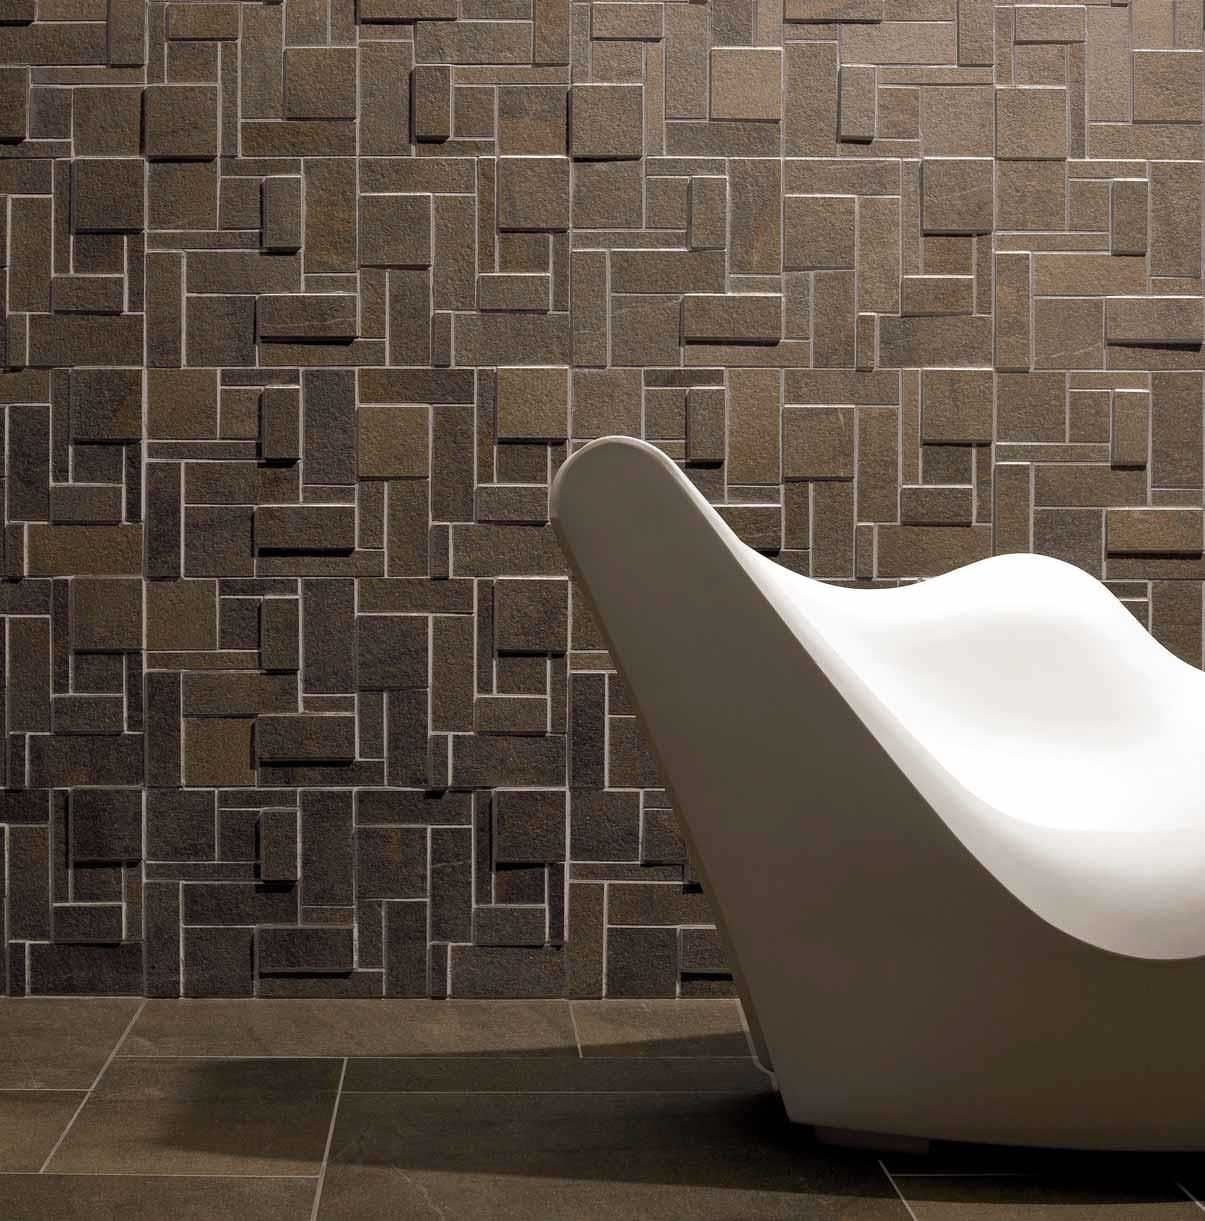 Commercial-Wall-Tiles-3D.jpg (1205×1221) | Starshines ...